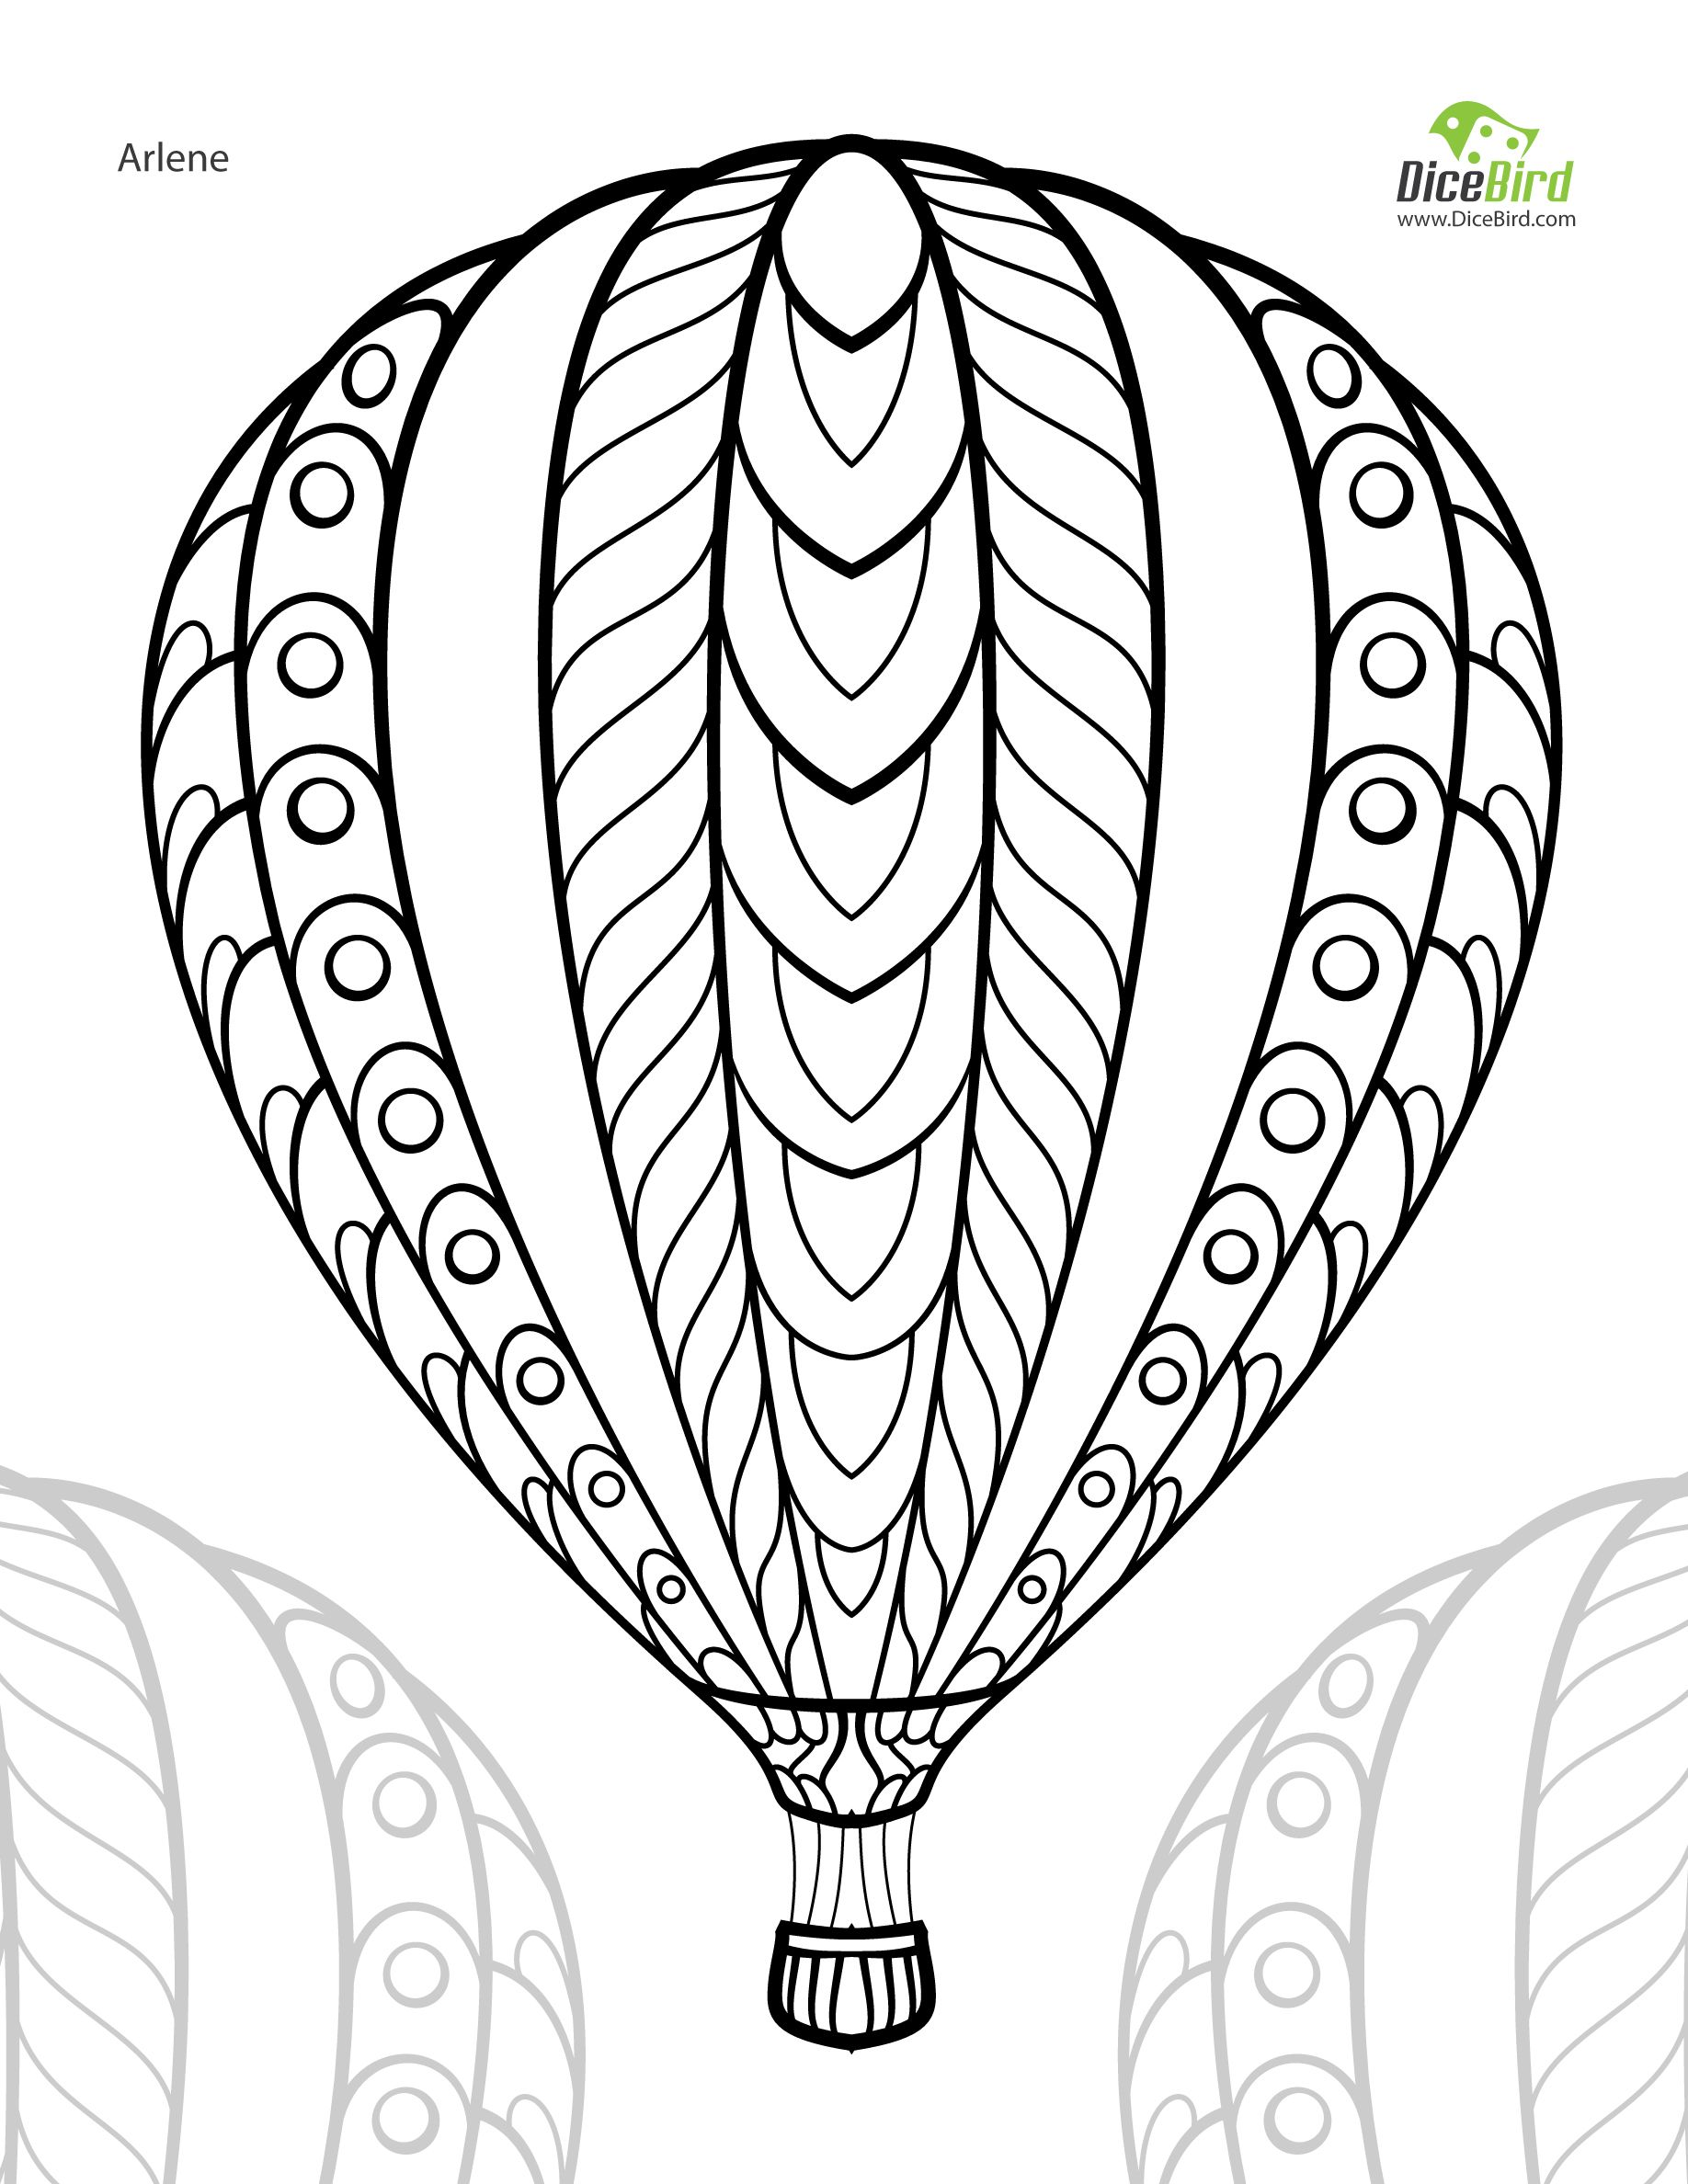 air coloring pages for kids - photo#27